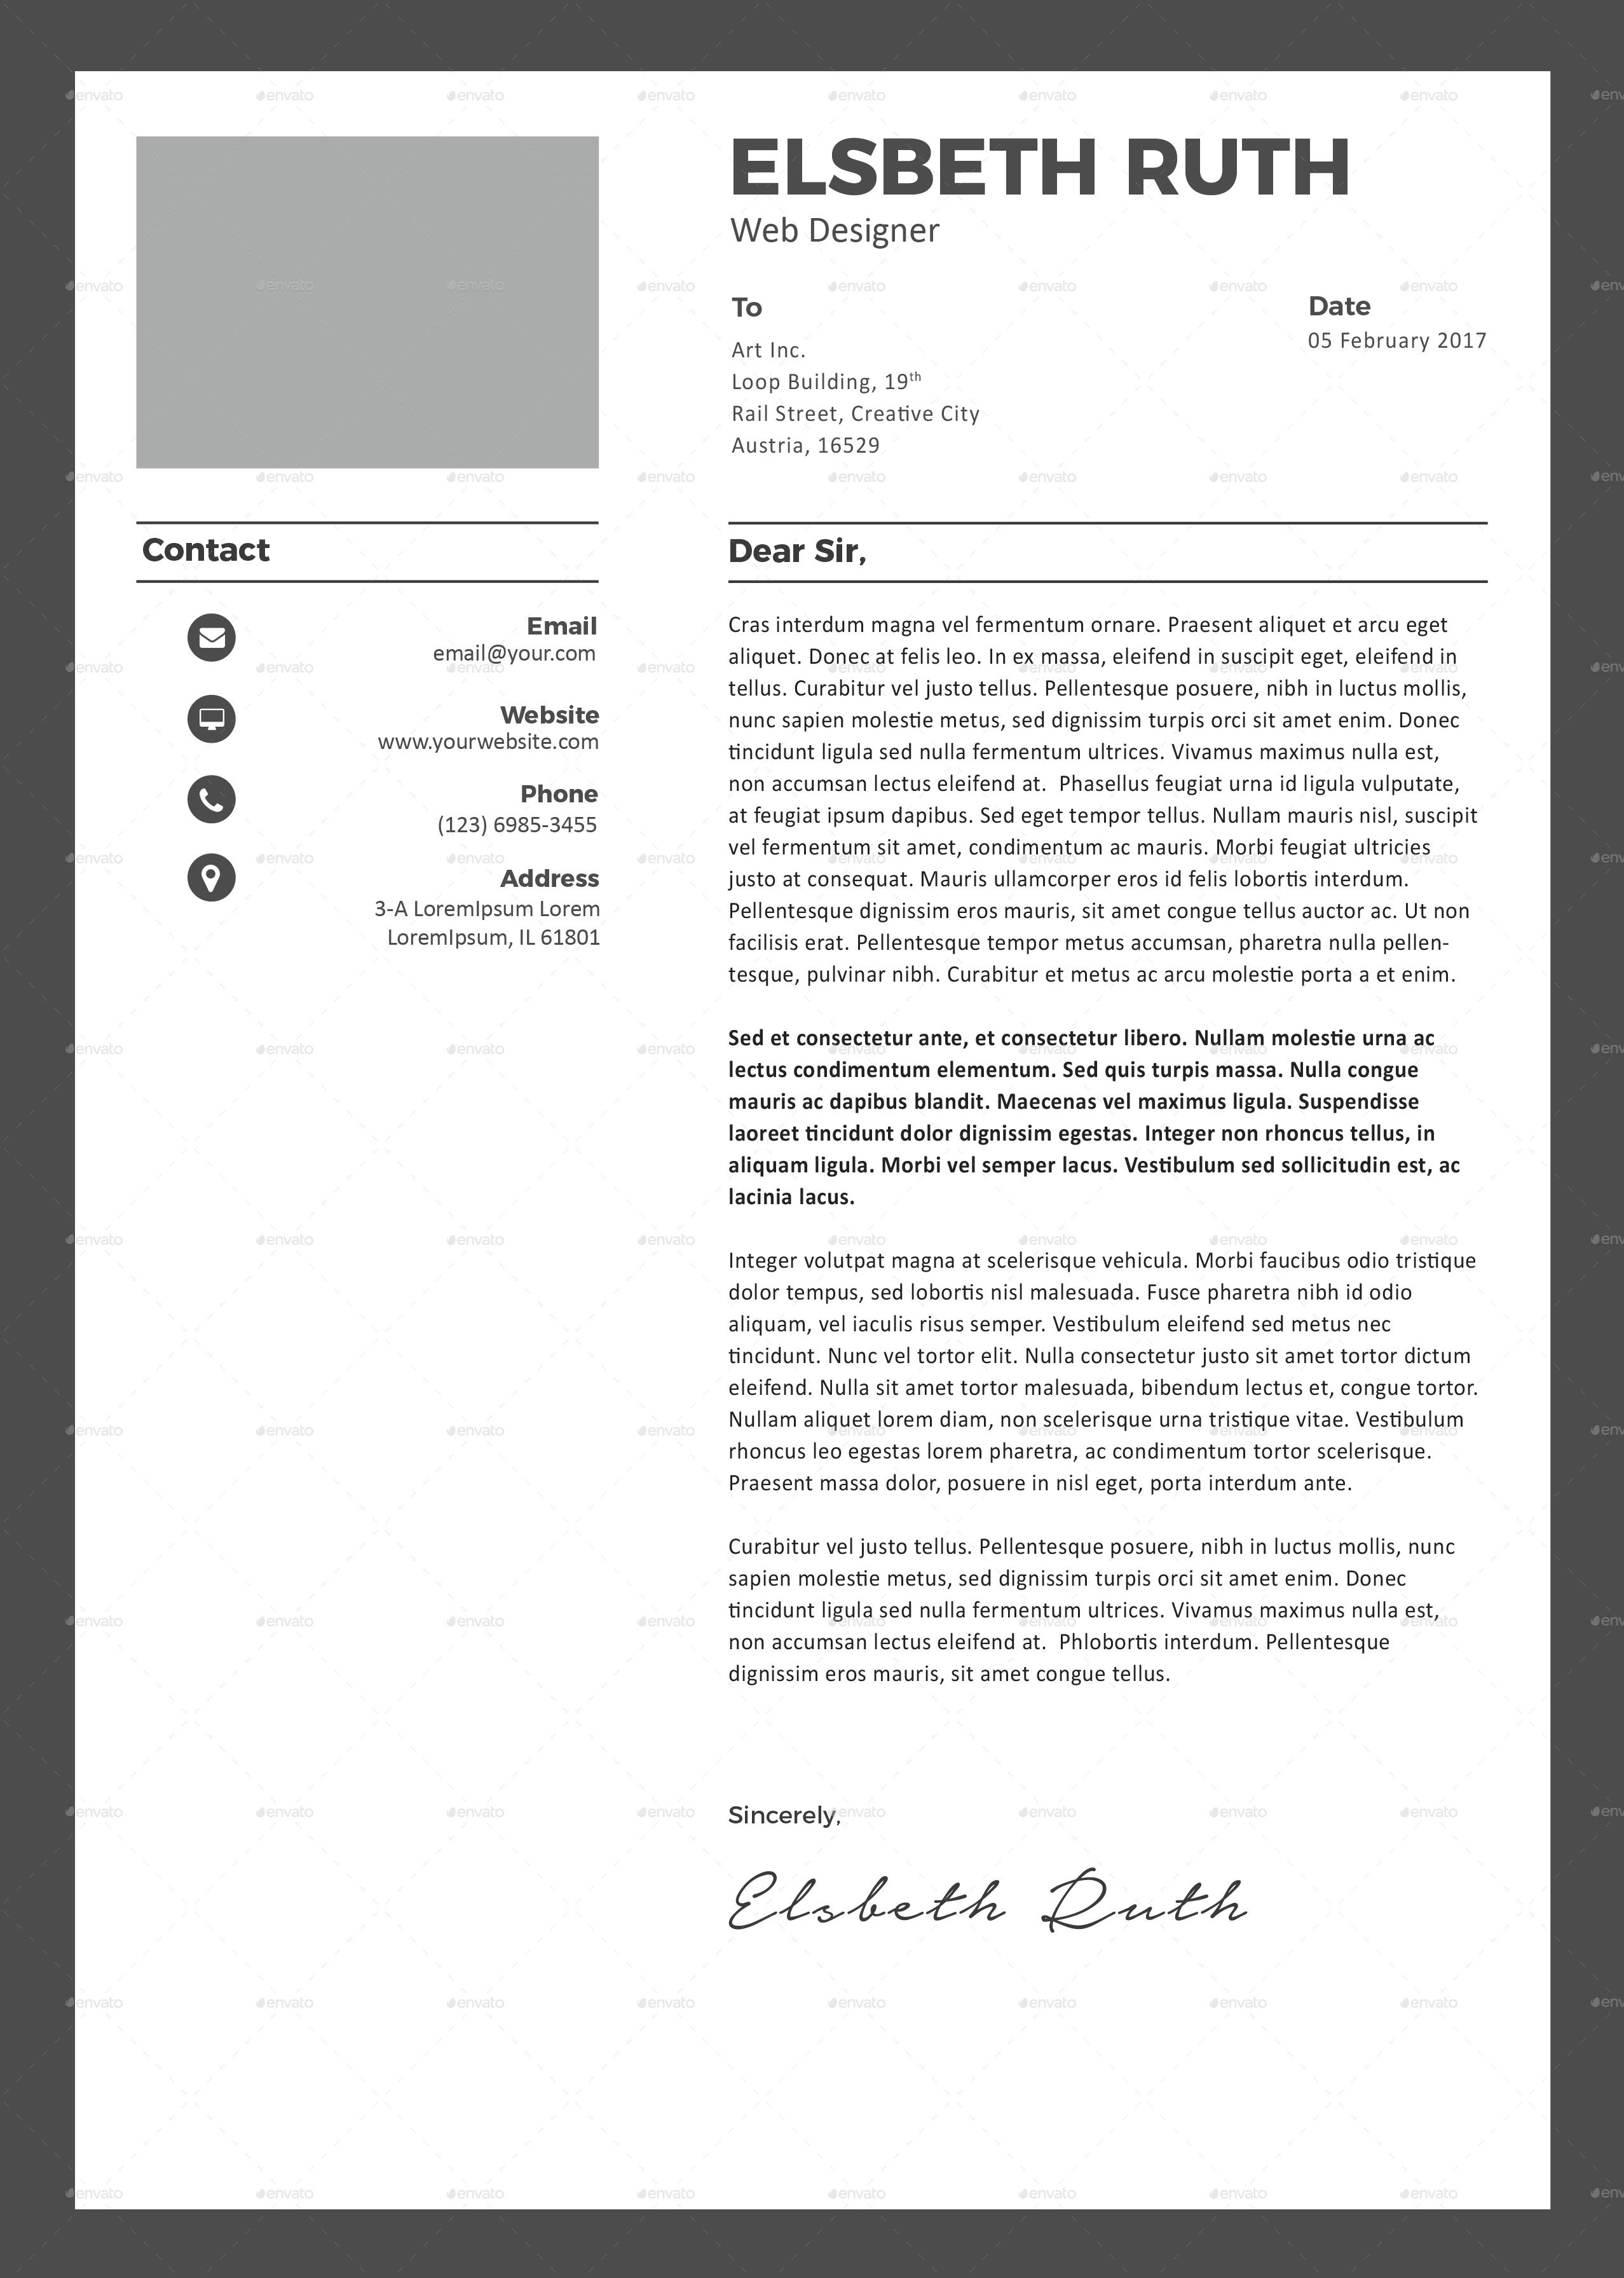 Application letter paper size - Save time! Outline your